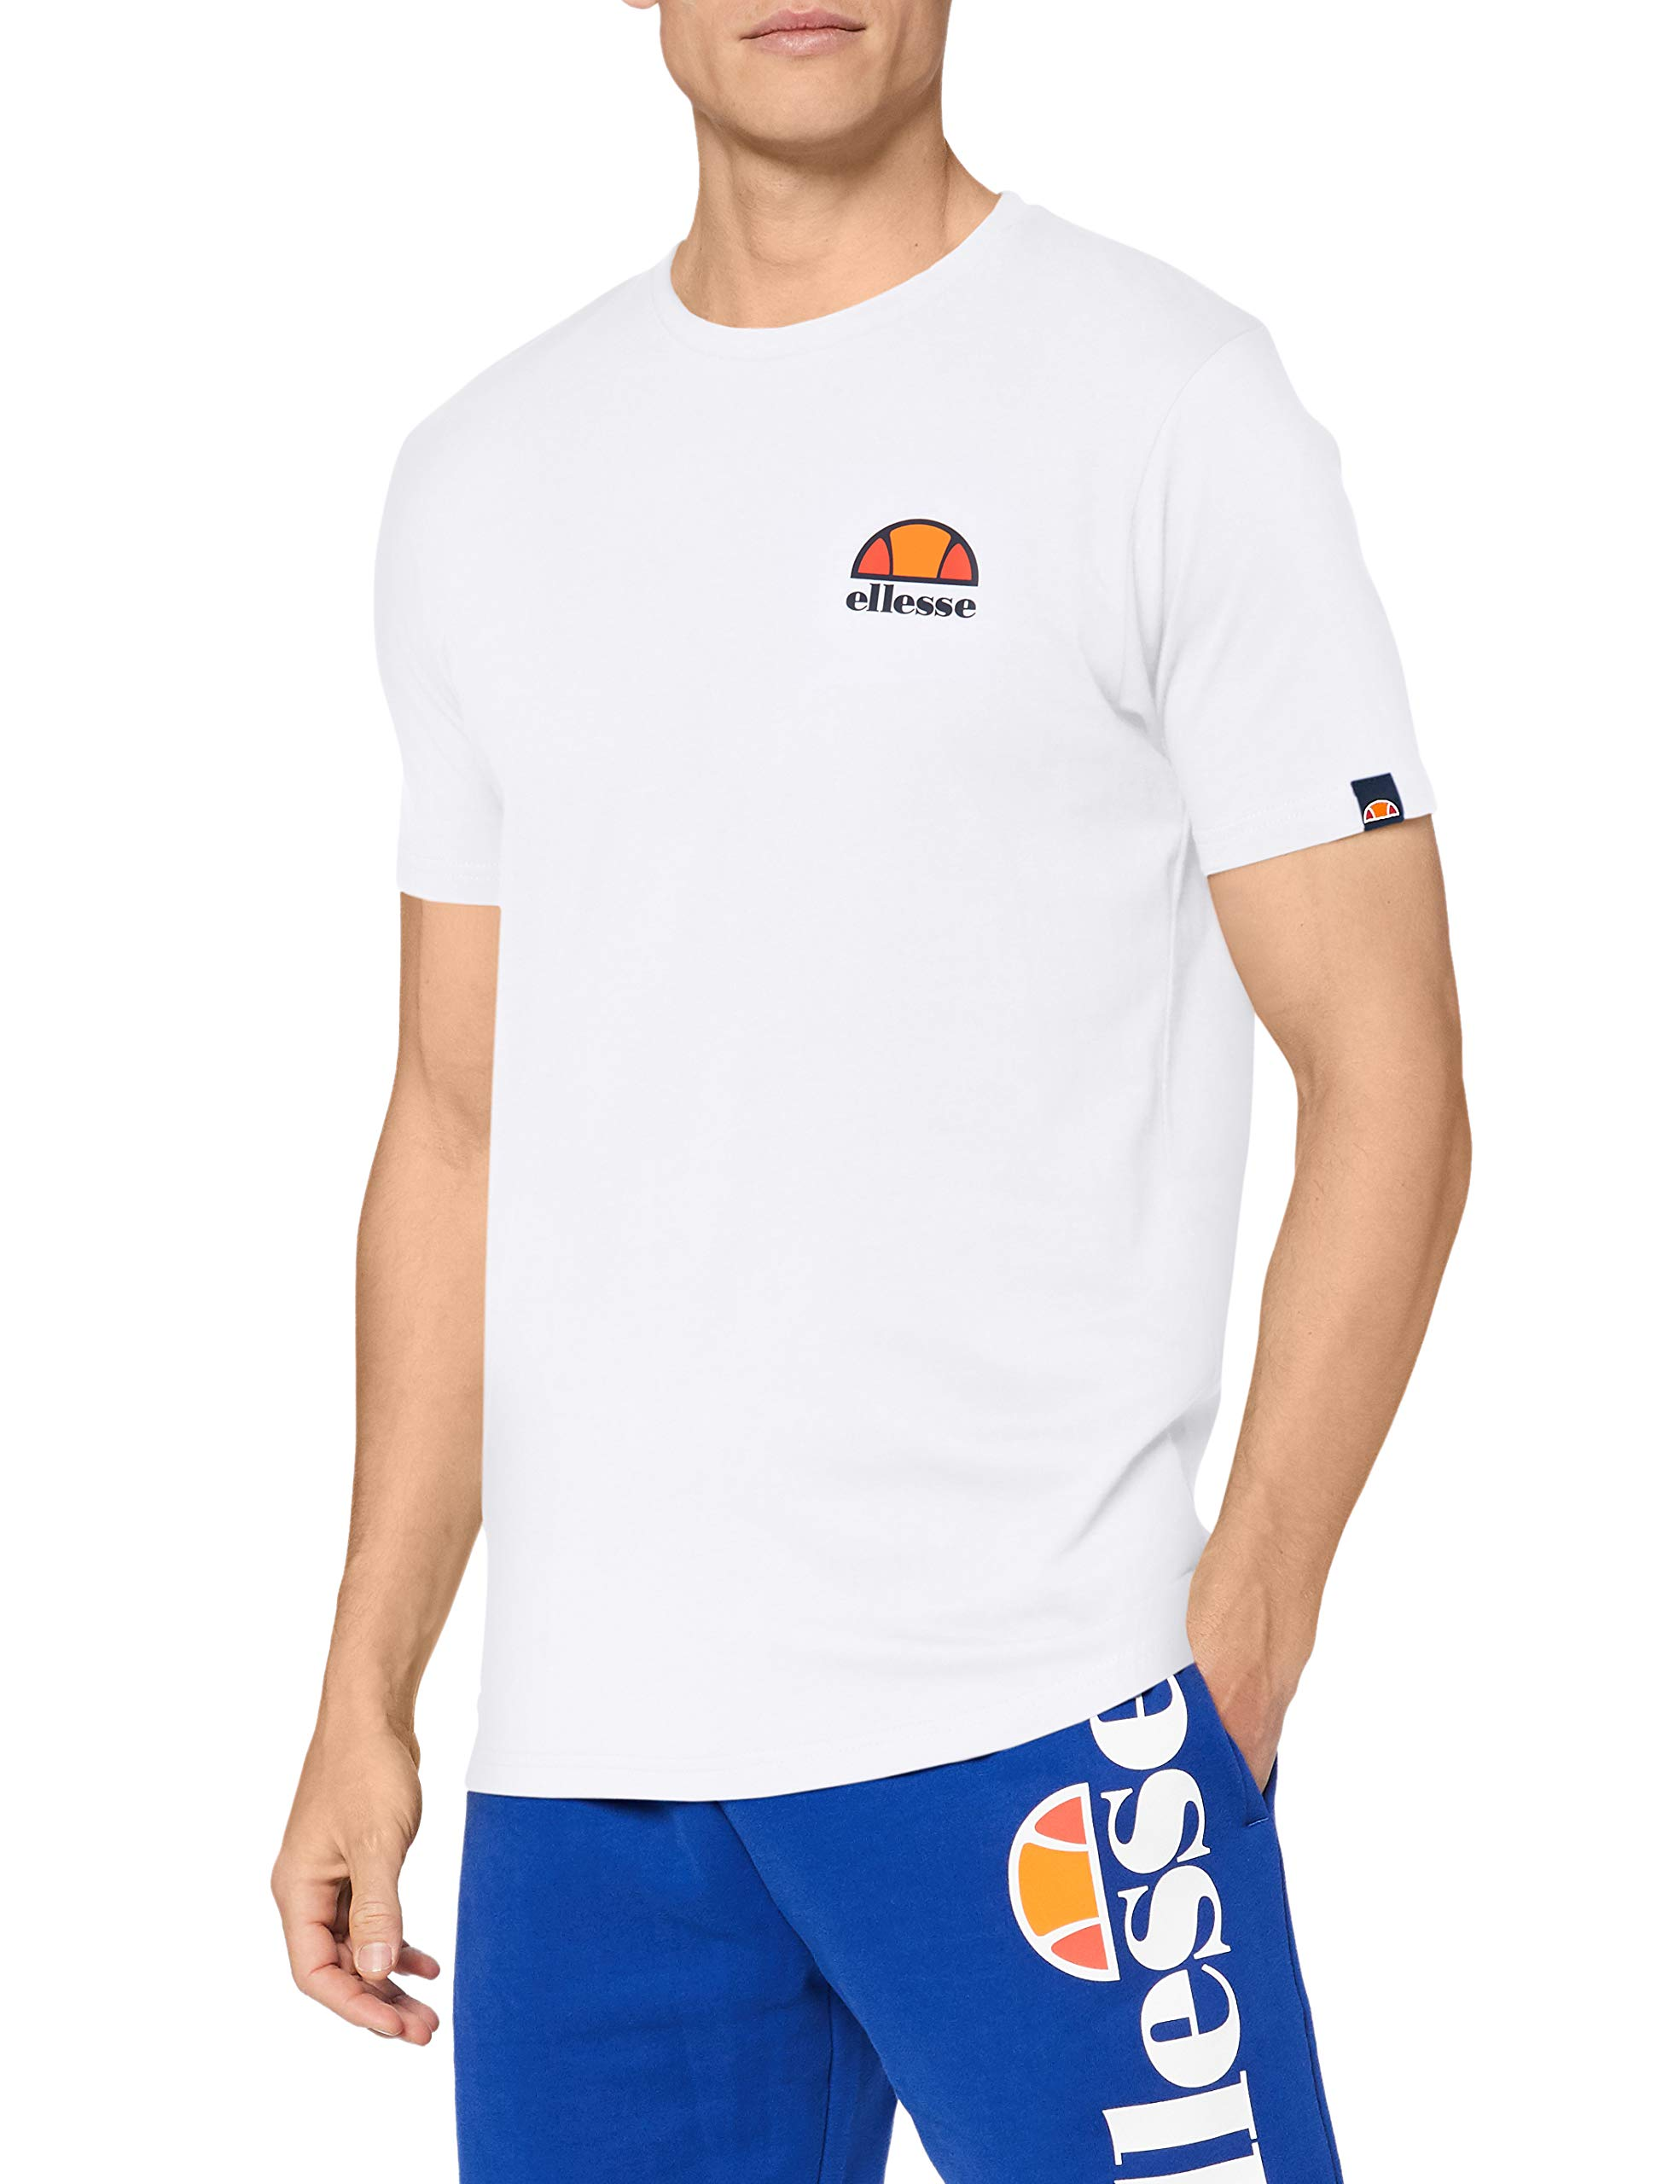 ellesse Canaletto Mens T-Shirt in Atmosphere